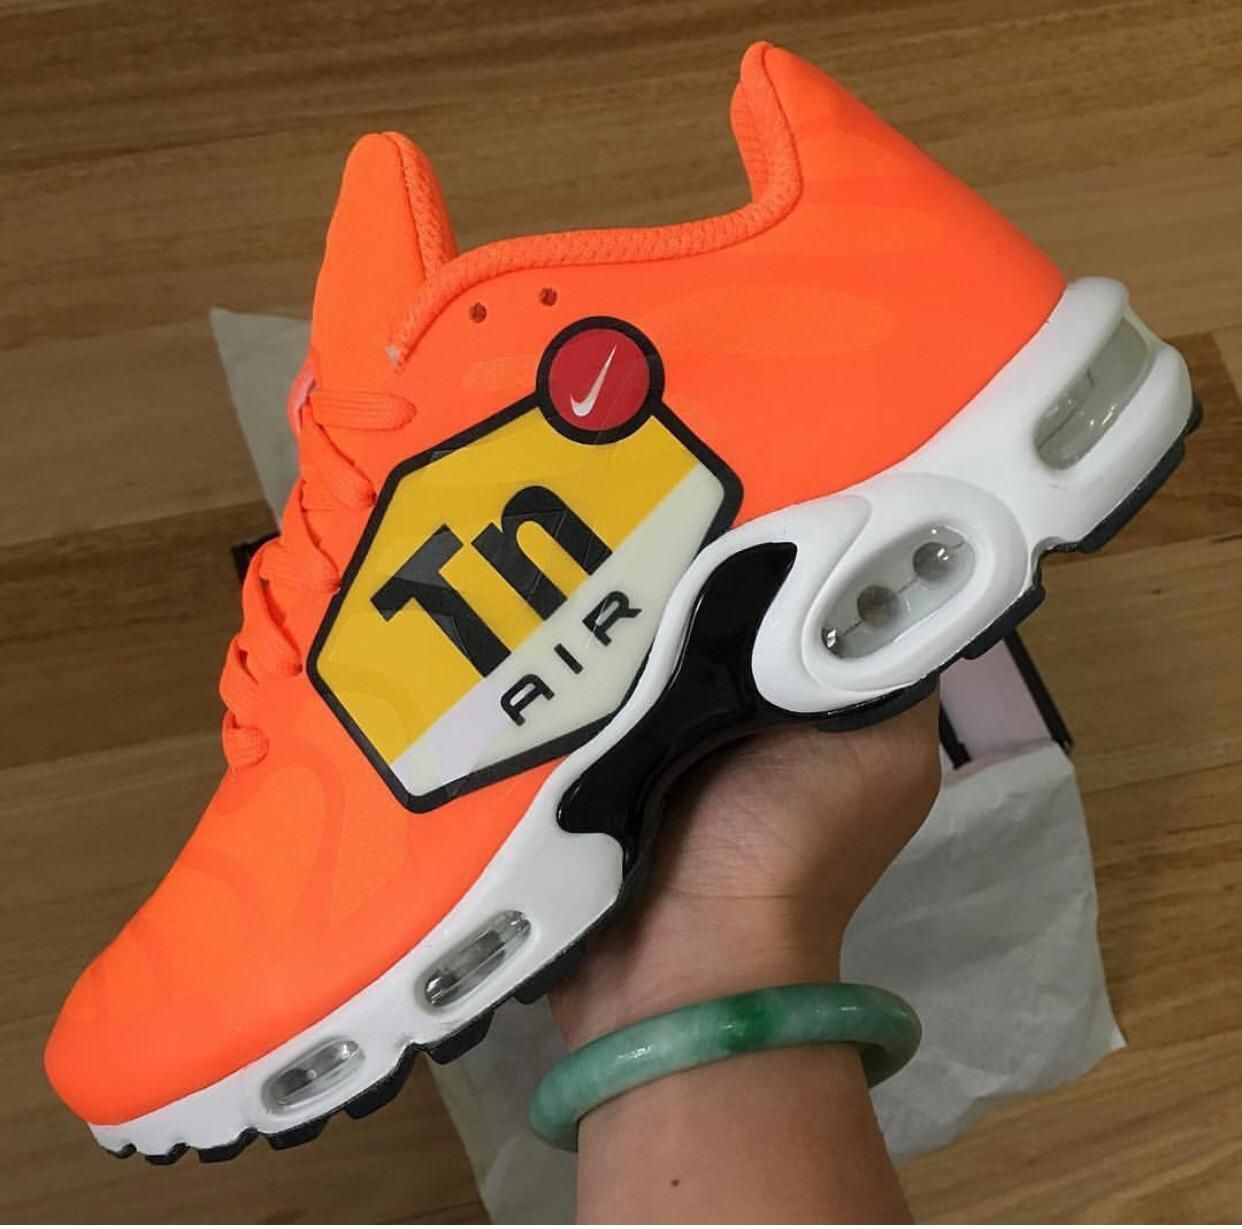 factory authentic 7e930 3555e big logo air max plus tn | Kicks | Sneakers nike, Air max plus, Nike ...